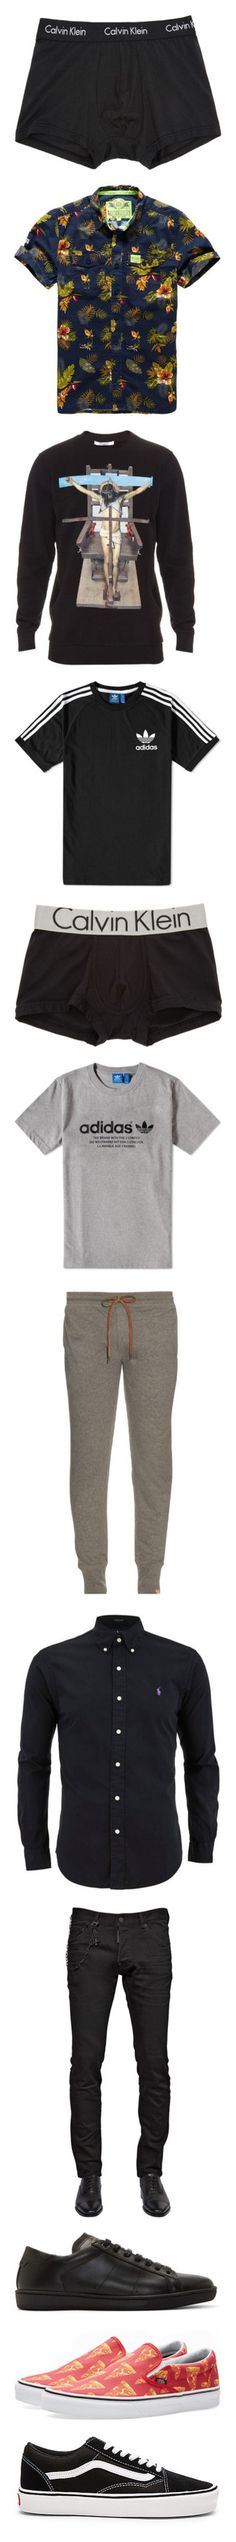 """""""MEN"""" by brunasthefanny ❤ liked on Polyvore featuring men's fashion, men's clothing, men's underwear, men, men's shirts, men's casual shirts, navy, men's hoodies, men's sweatshirts and black"""